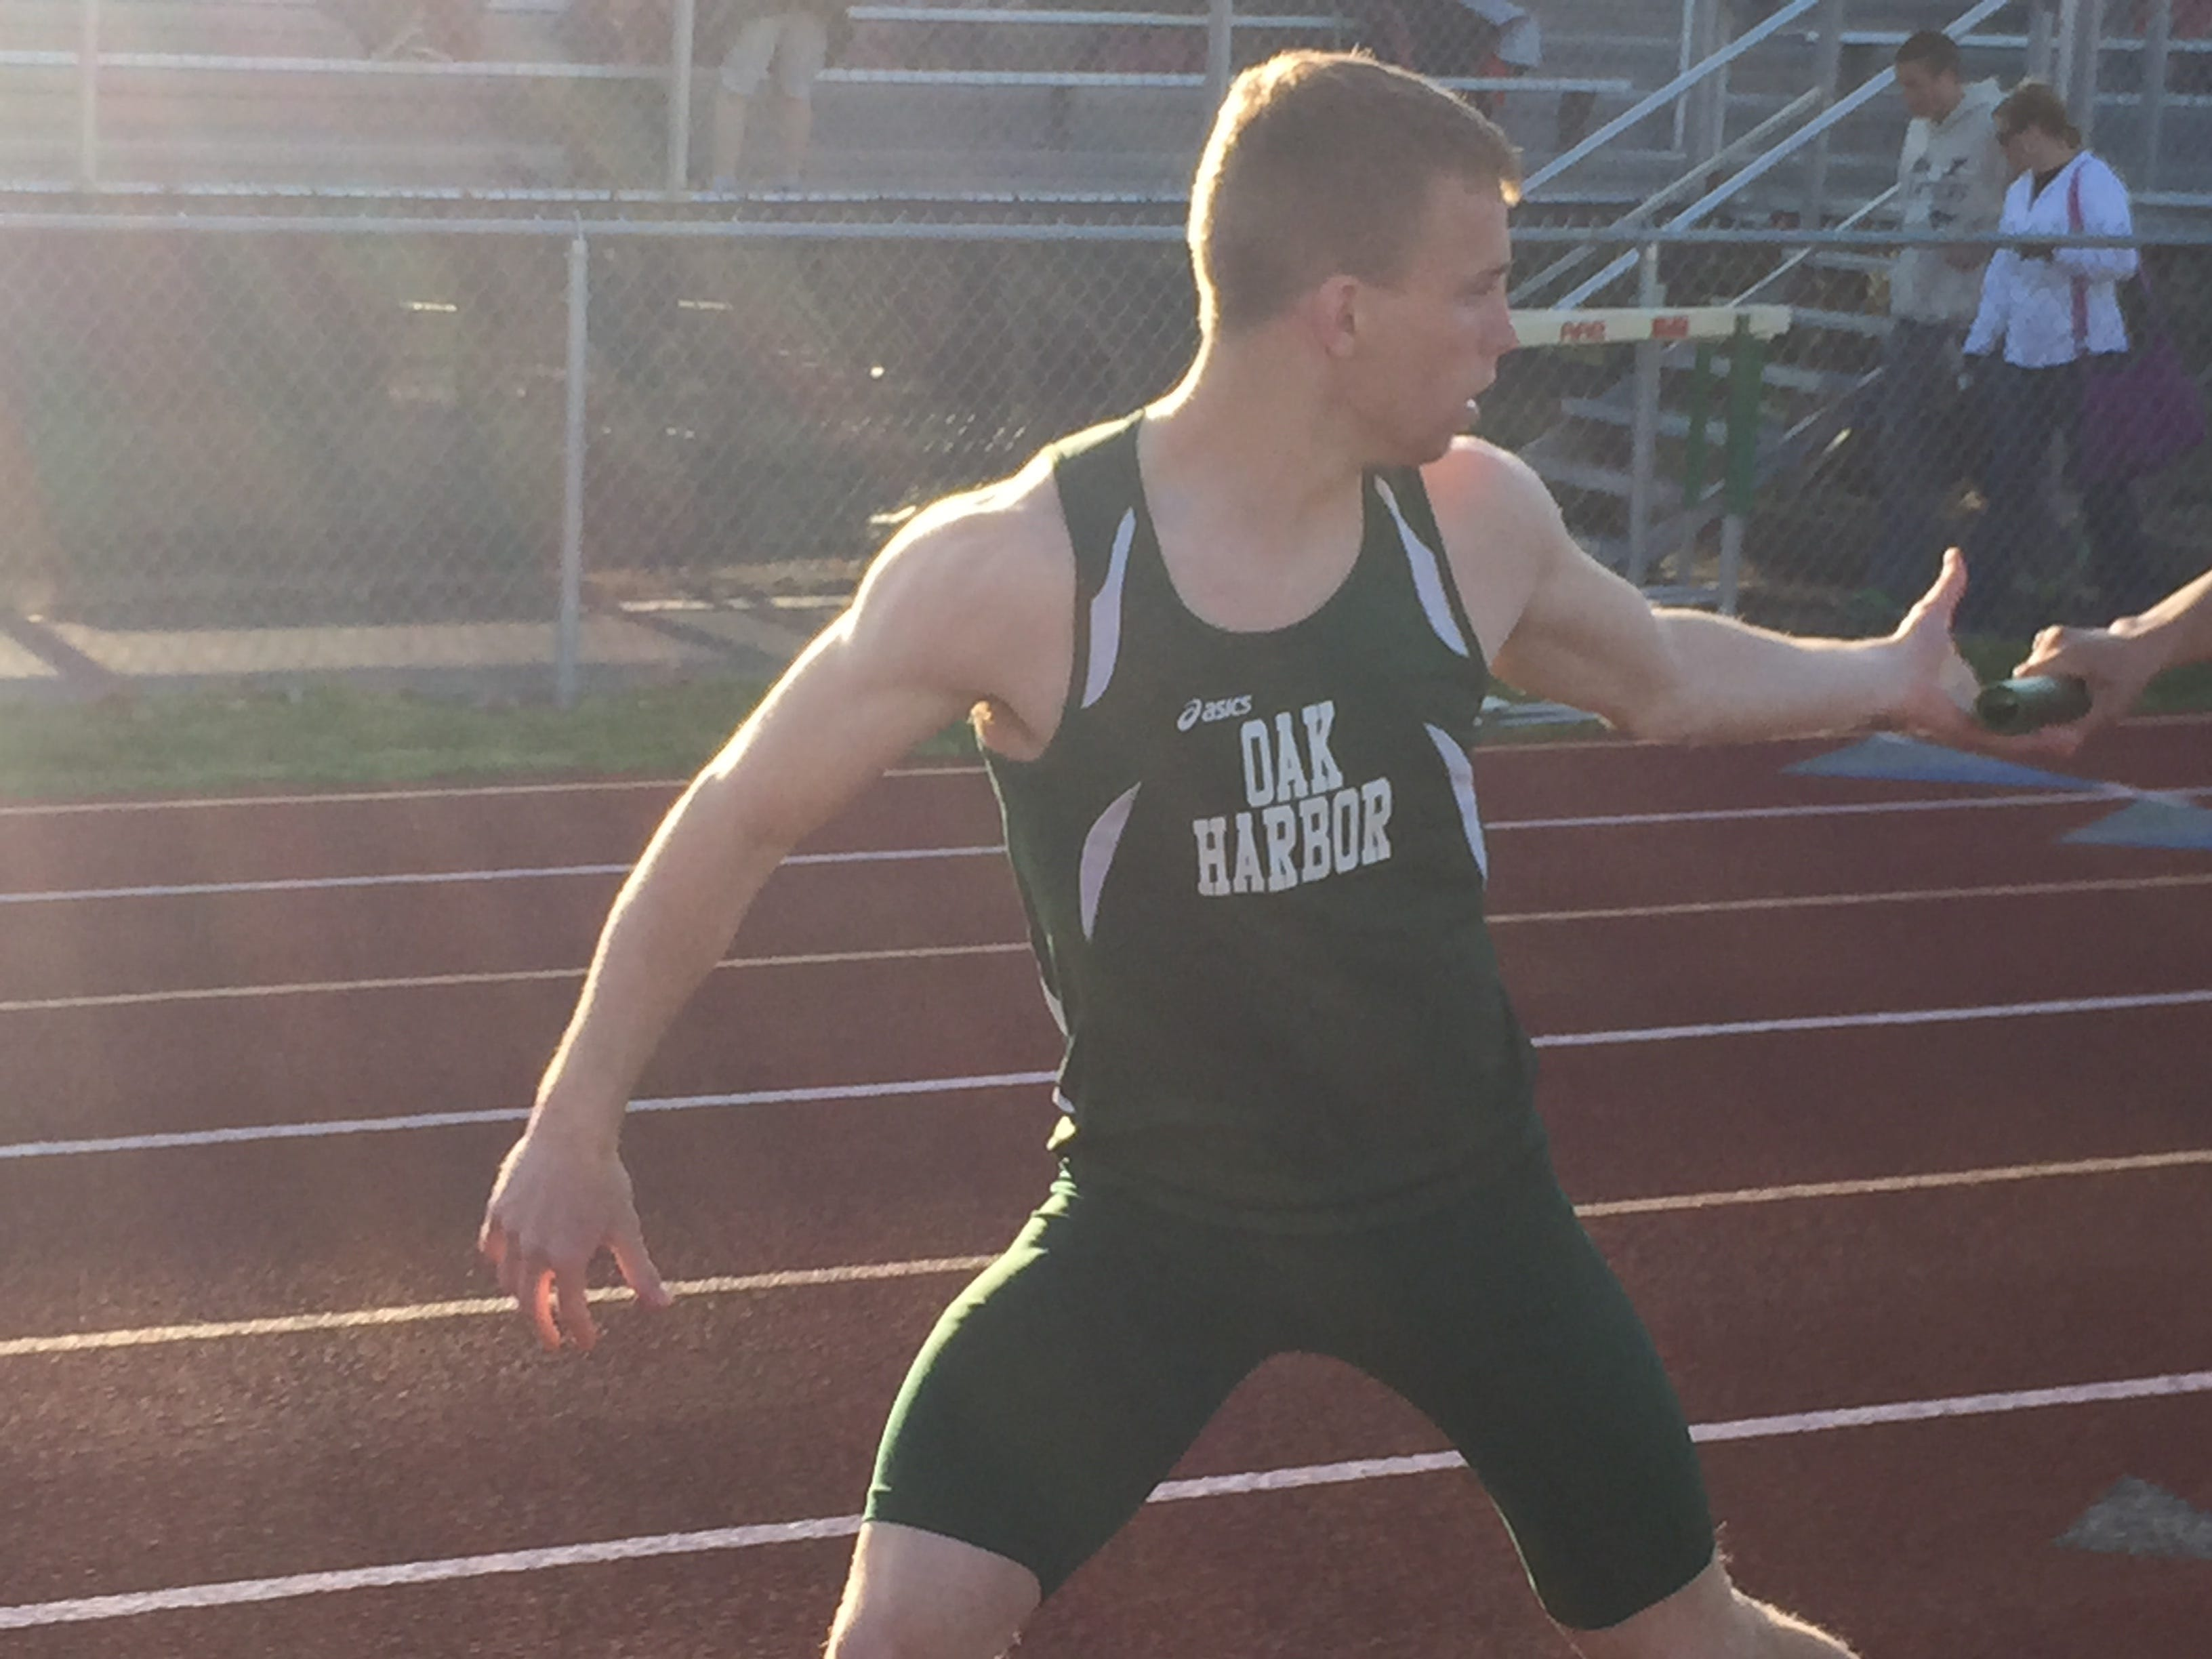 Oak Harbor's Cole Weirich won the 100 at the Sandusky Bay Conference track meet.